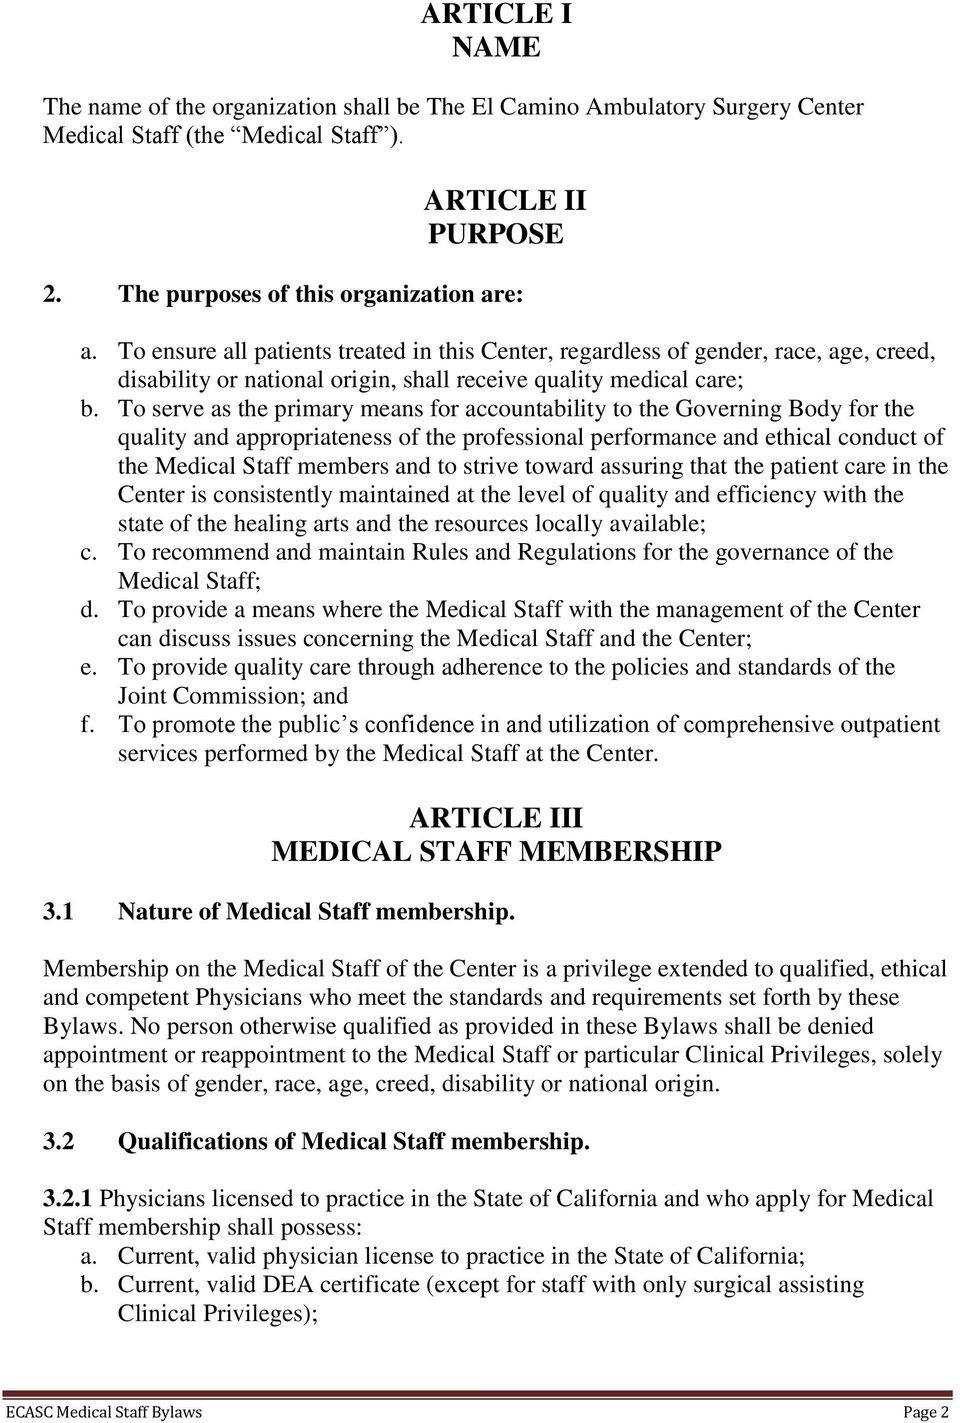 To serve as the primary means for accountability to the Governing Body for the quality and appropriateness of the professional performance and ethical conduct of the Medical Staff members and to